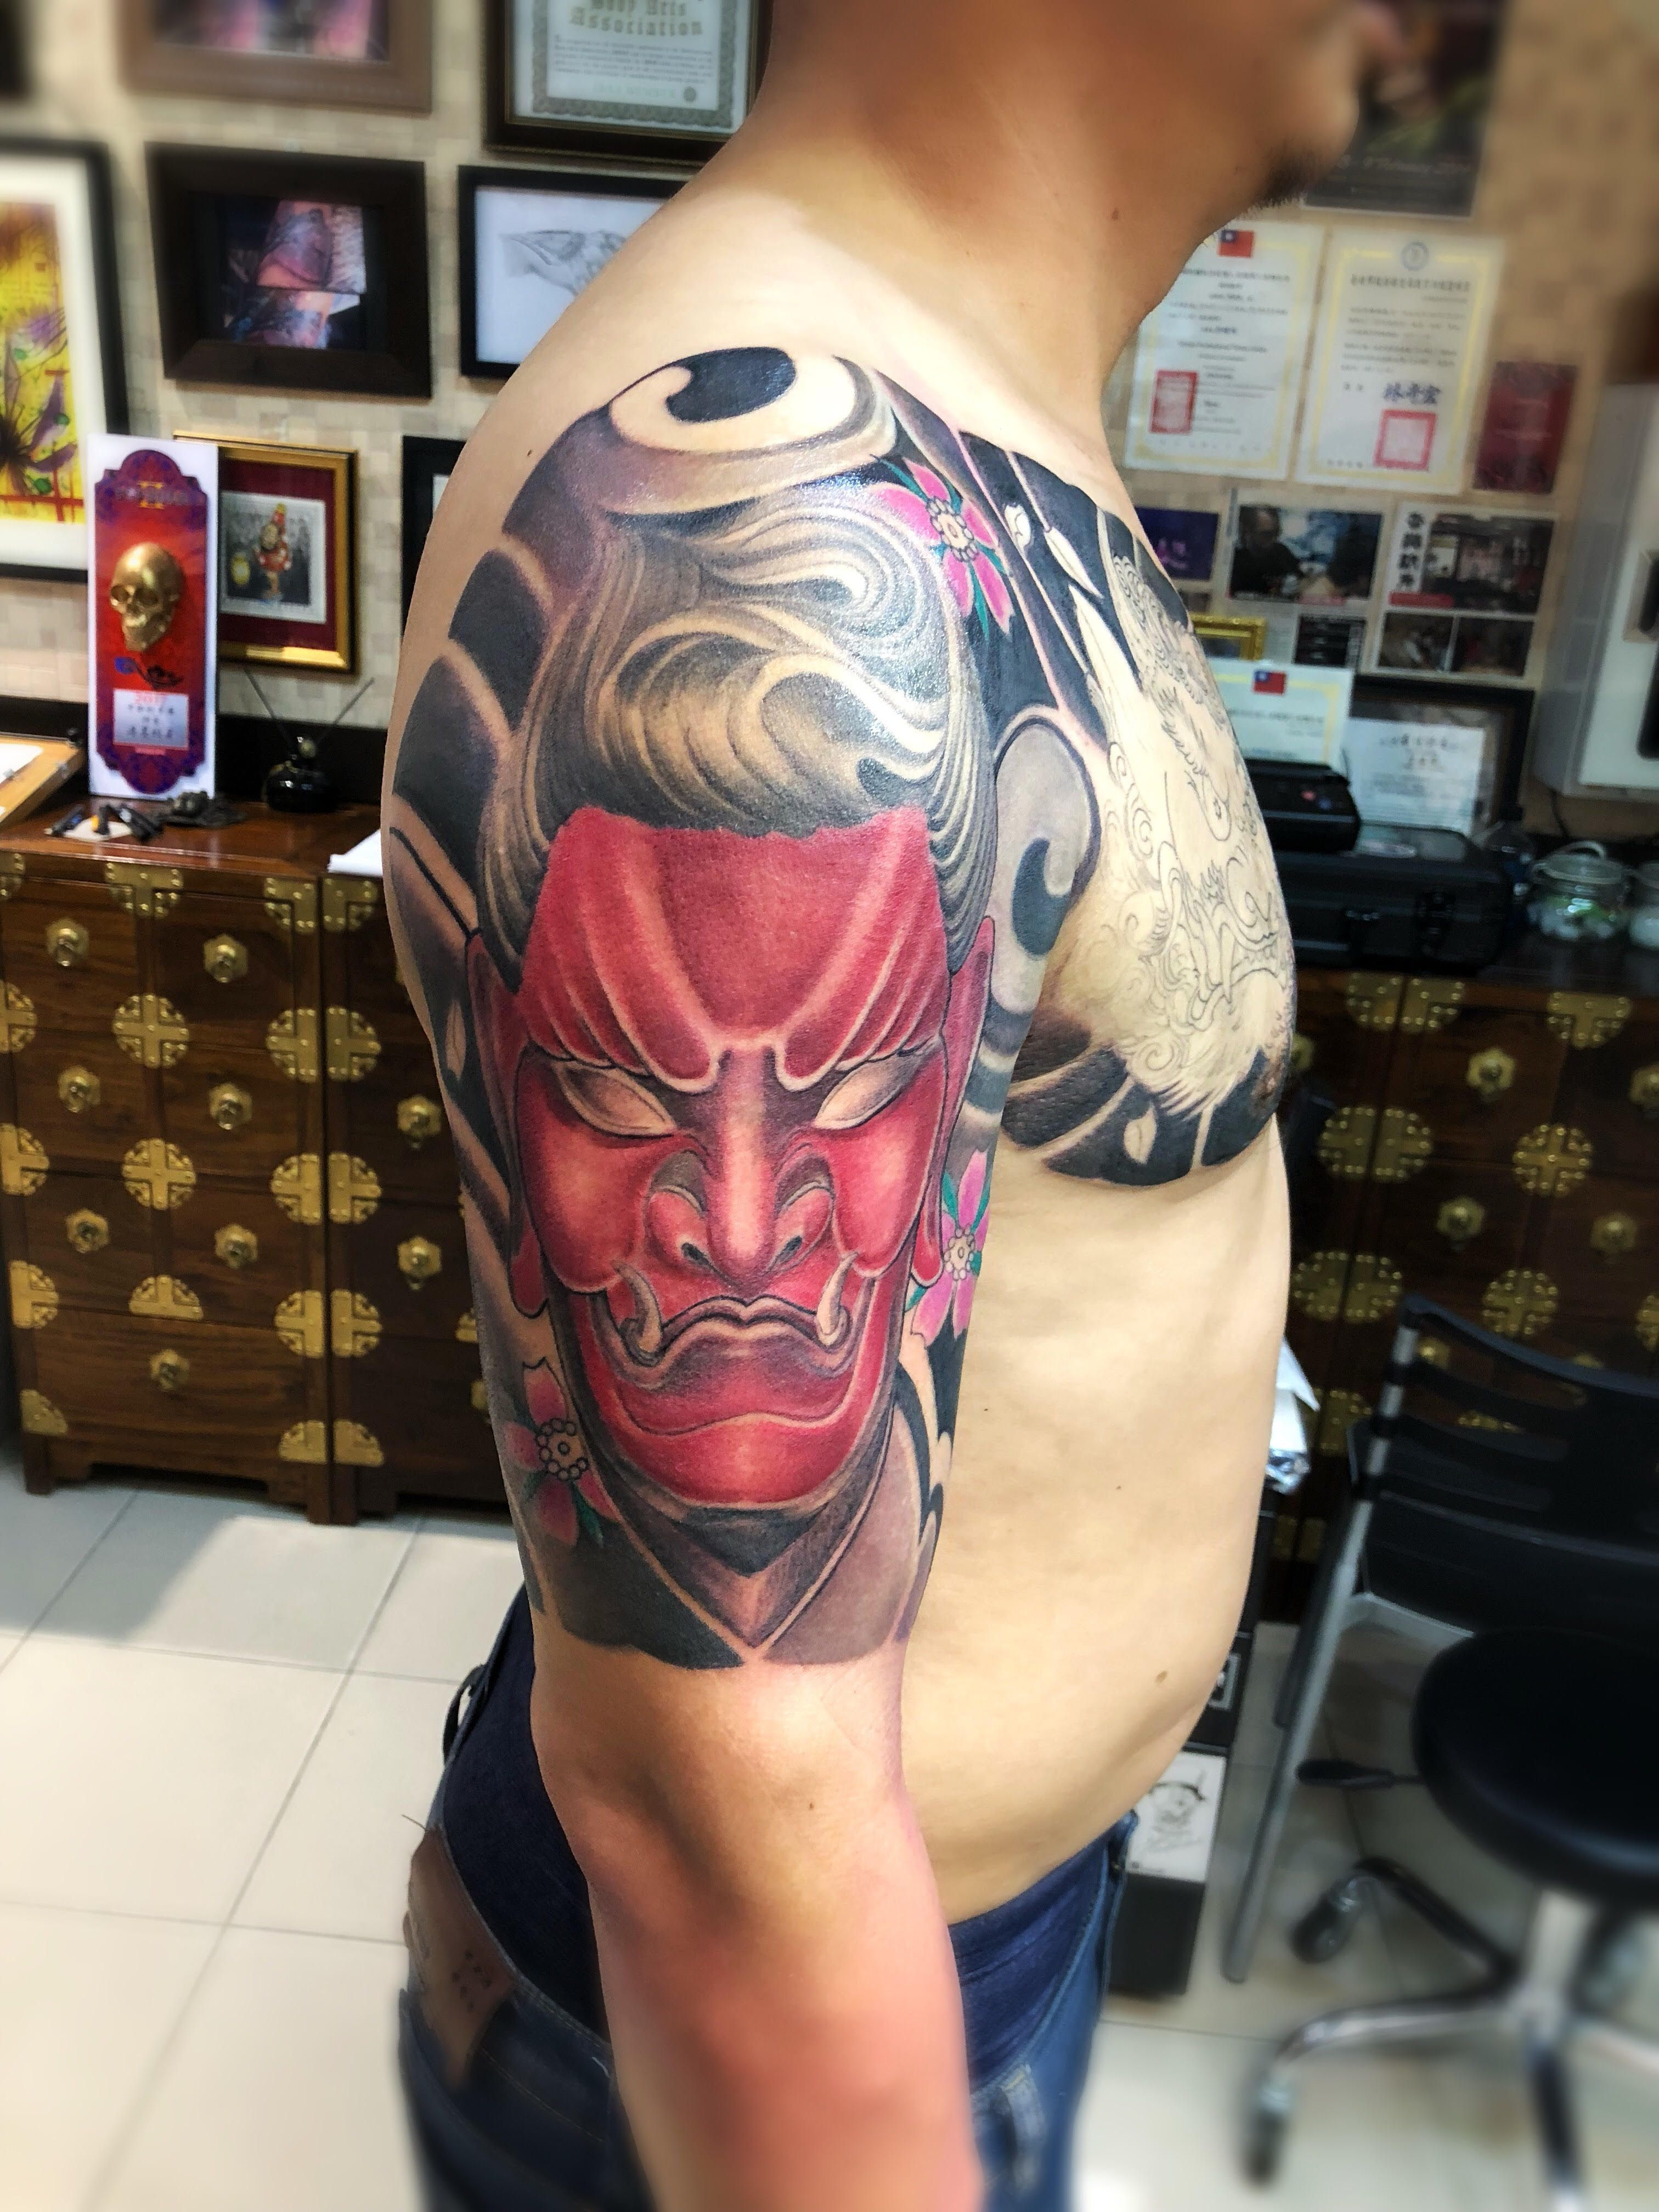 hkinkt2 @fusion ink one more session to go artist Michael Chan ...